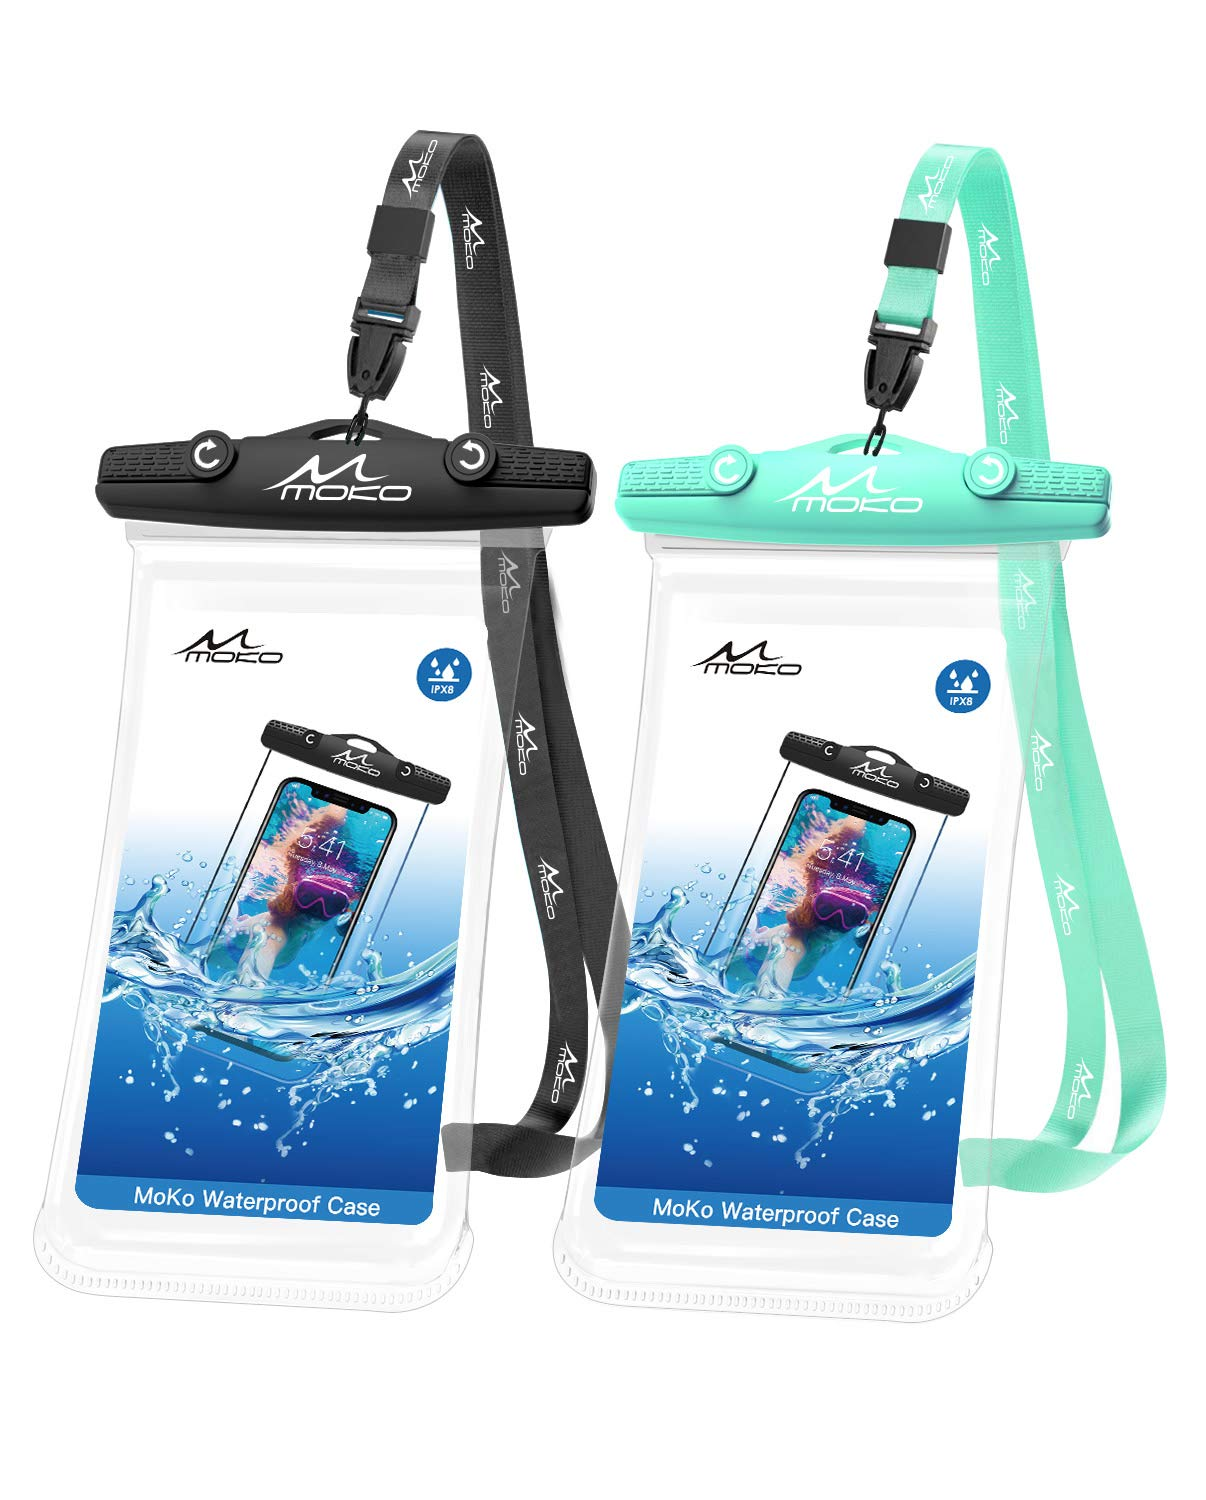 MoKo Waterproof Phone Pouch, [2 Pack] Underwater Cellphone Case Dry Bag with Lanyard Compatible with iPhone 11/11 Pro/11 Pro Max, X/Xs/Xr/Xs Max/8/7, Samsung S20/S10/S9/S8/S10e/Note 10, Black+Green